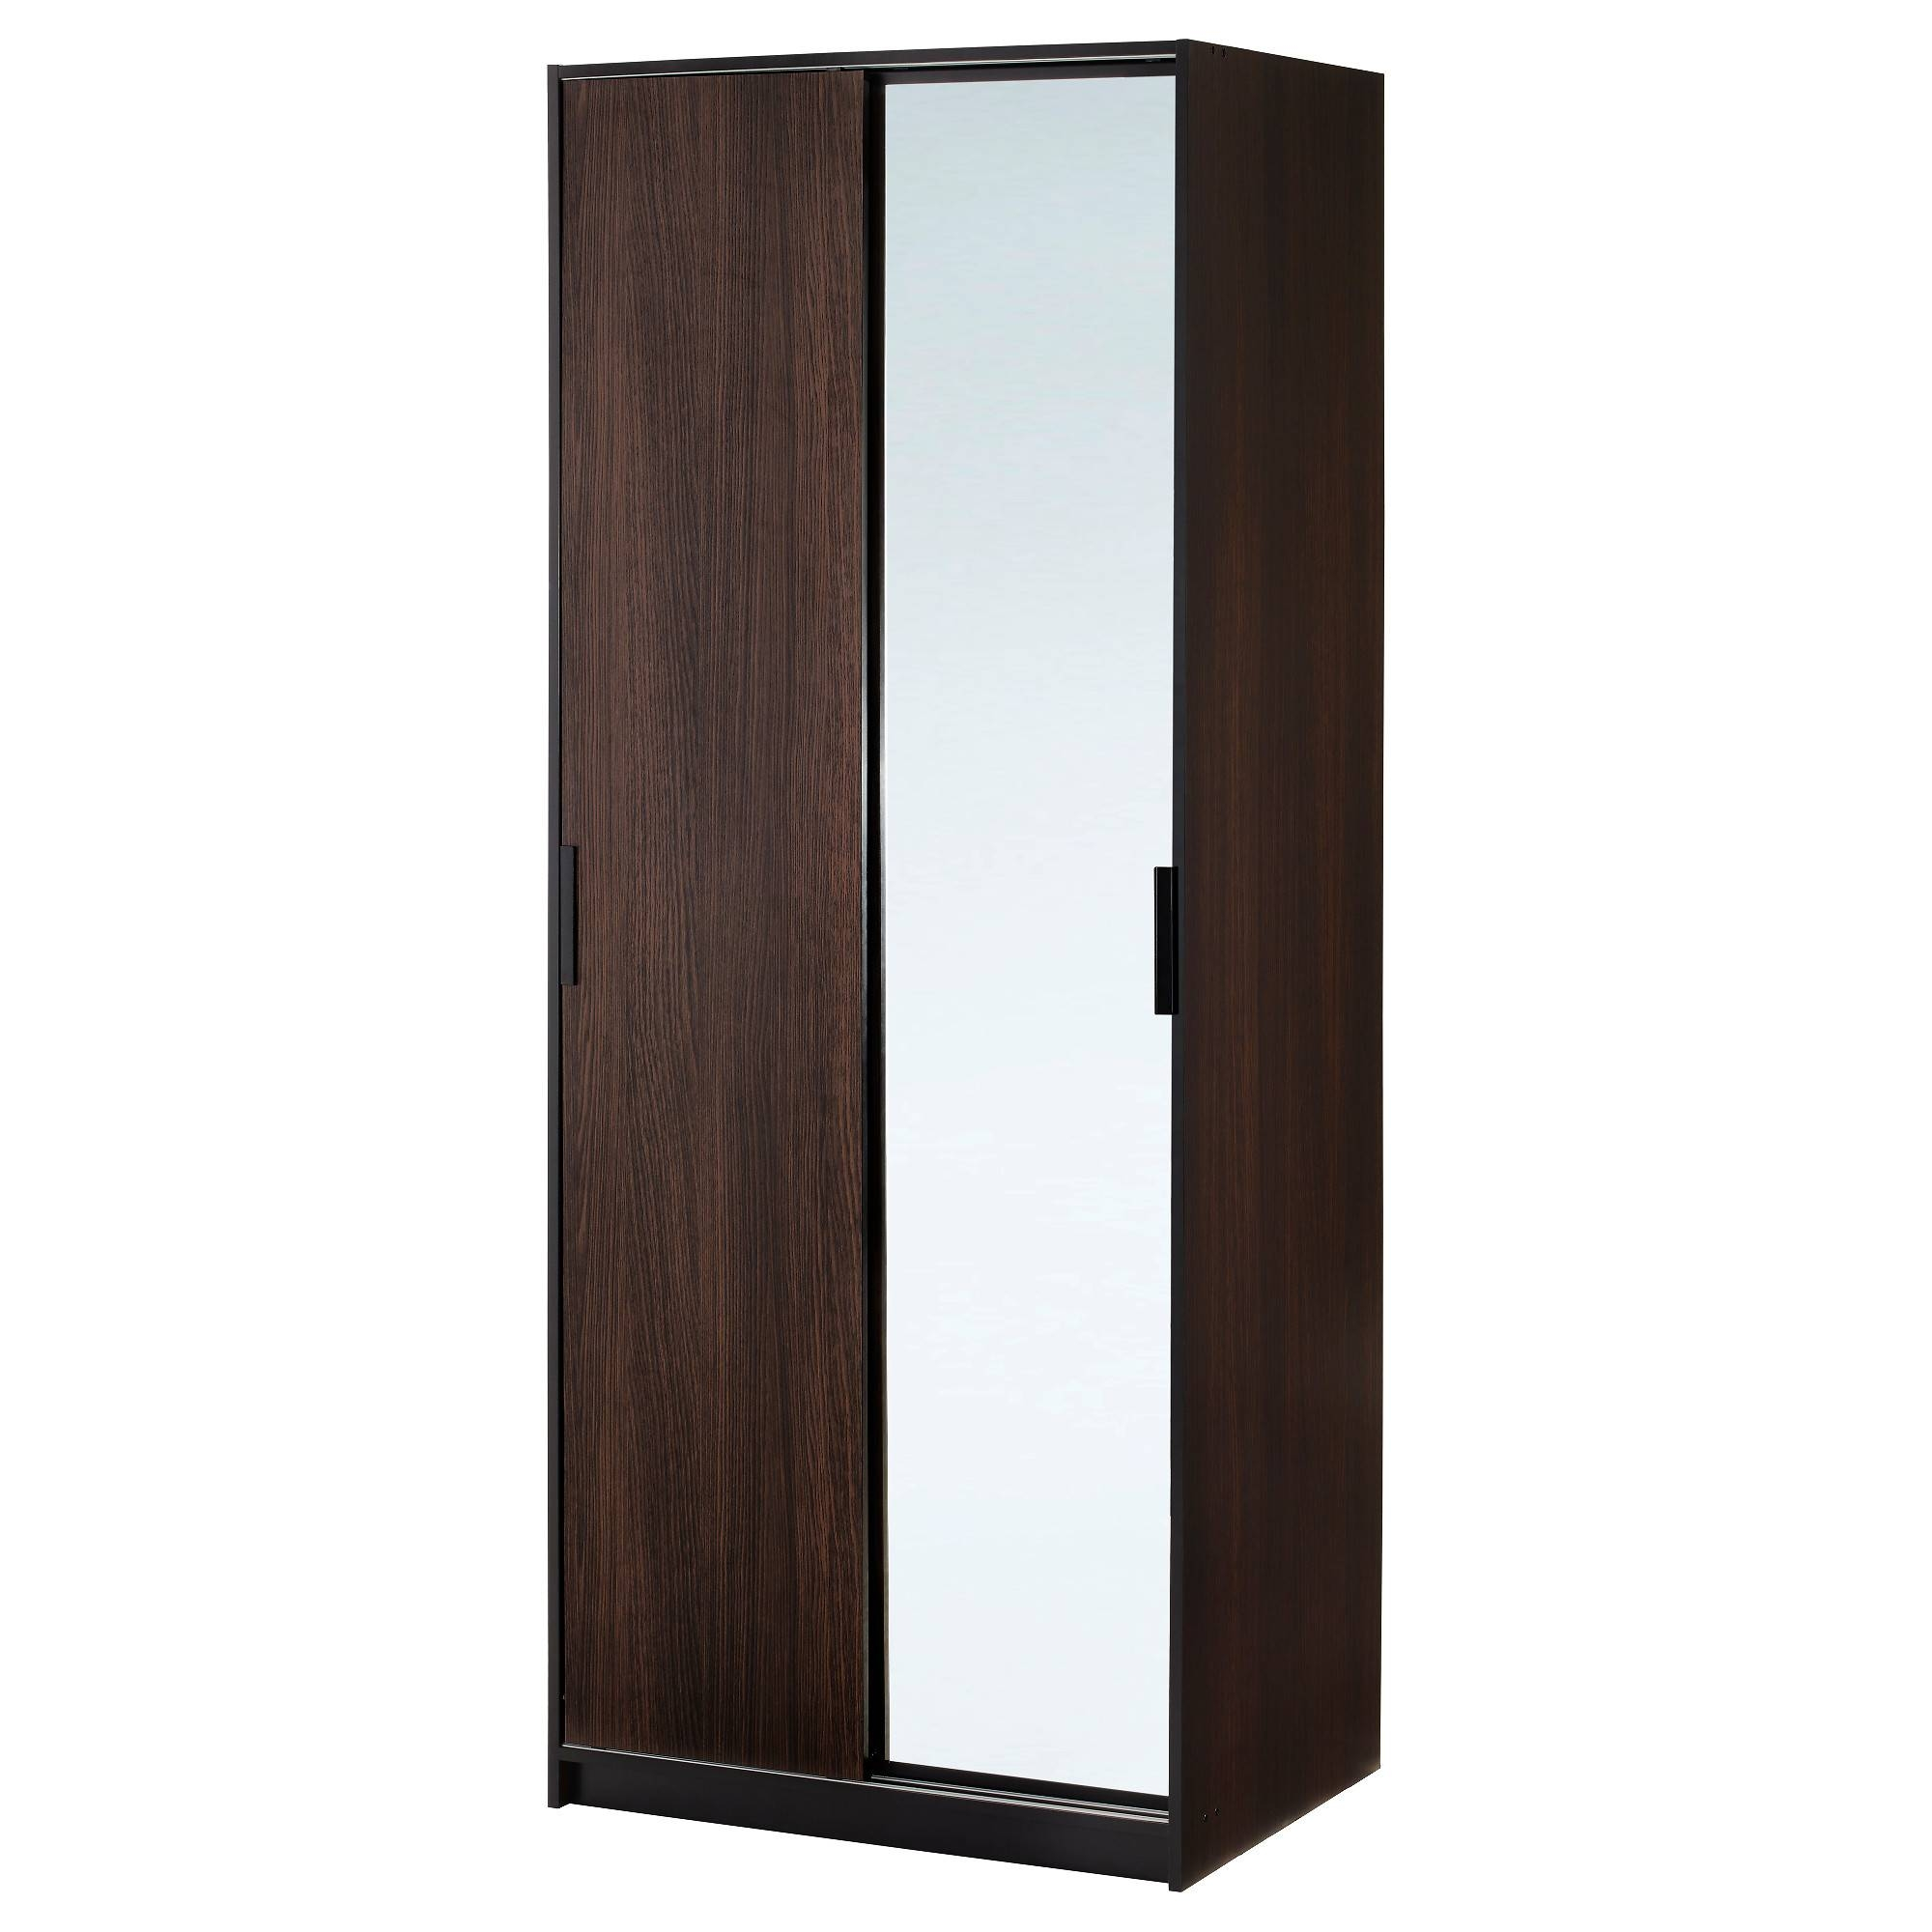 Trysil Wardrobe Dark Brown/mirror Glass 79X61X202 Cm – Ikea Within Single Wardrobes With Mirror (View 12 of 15)